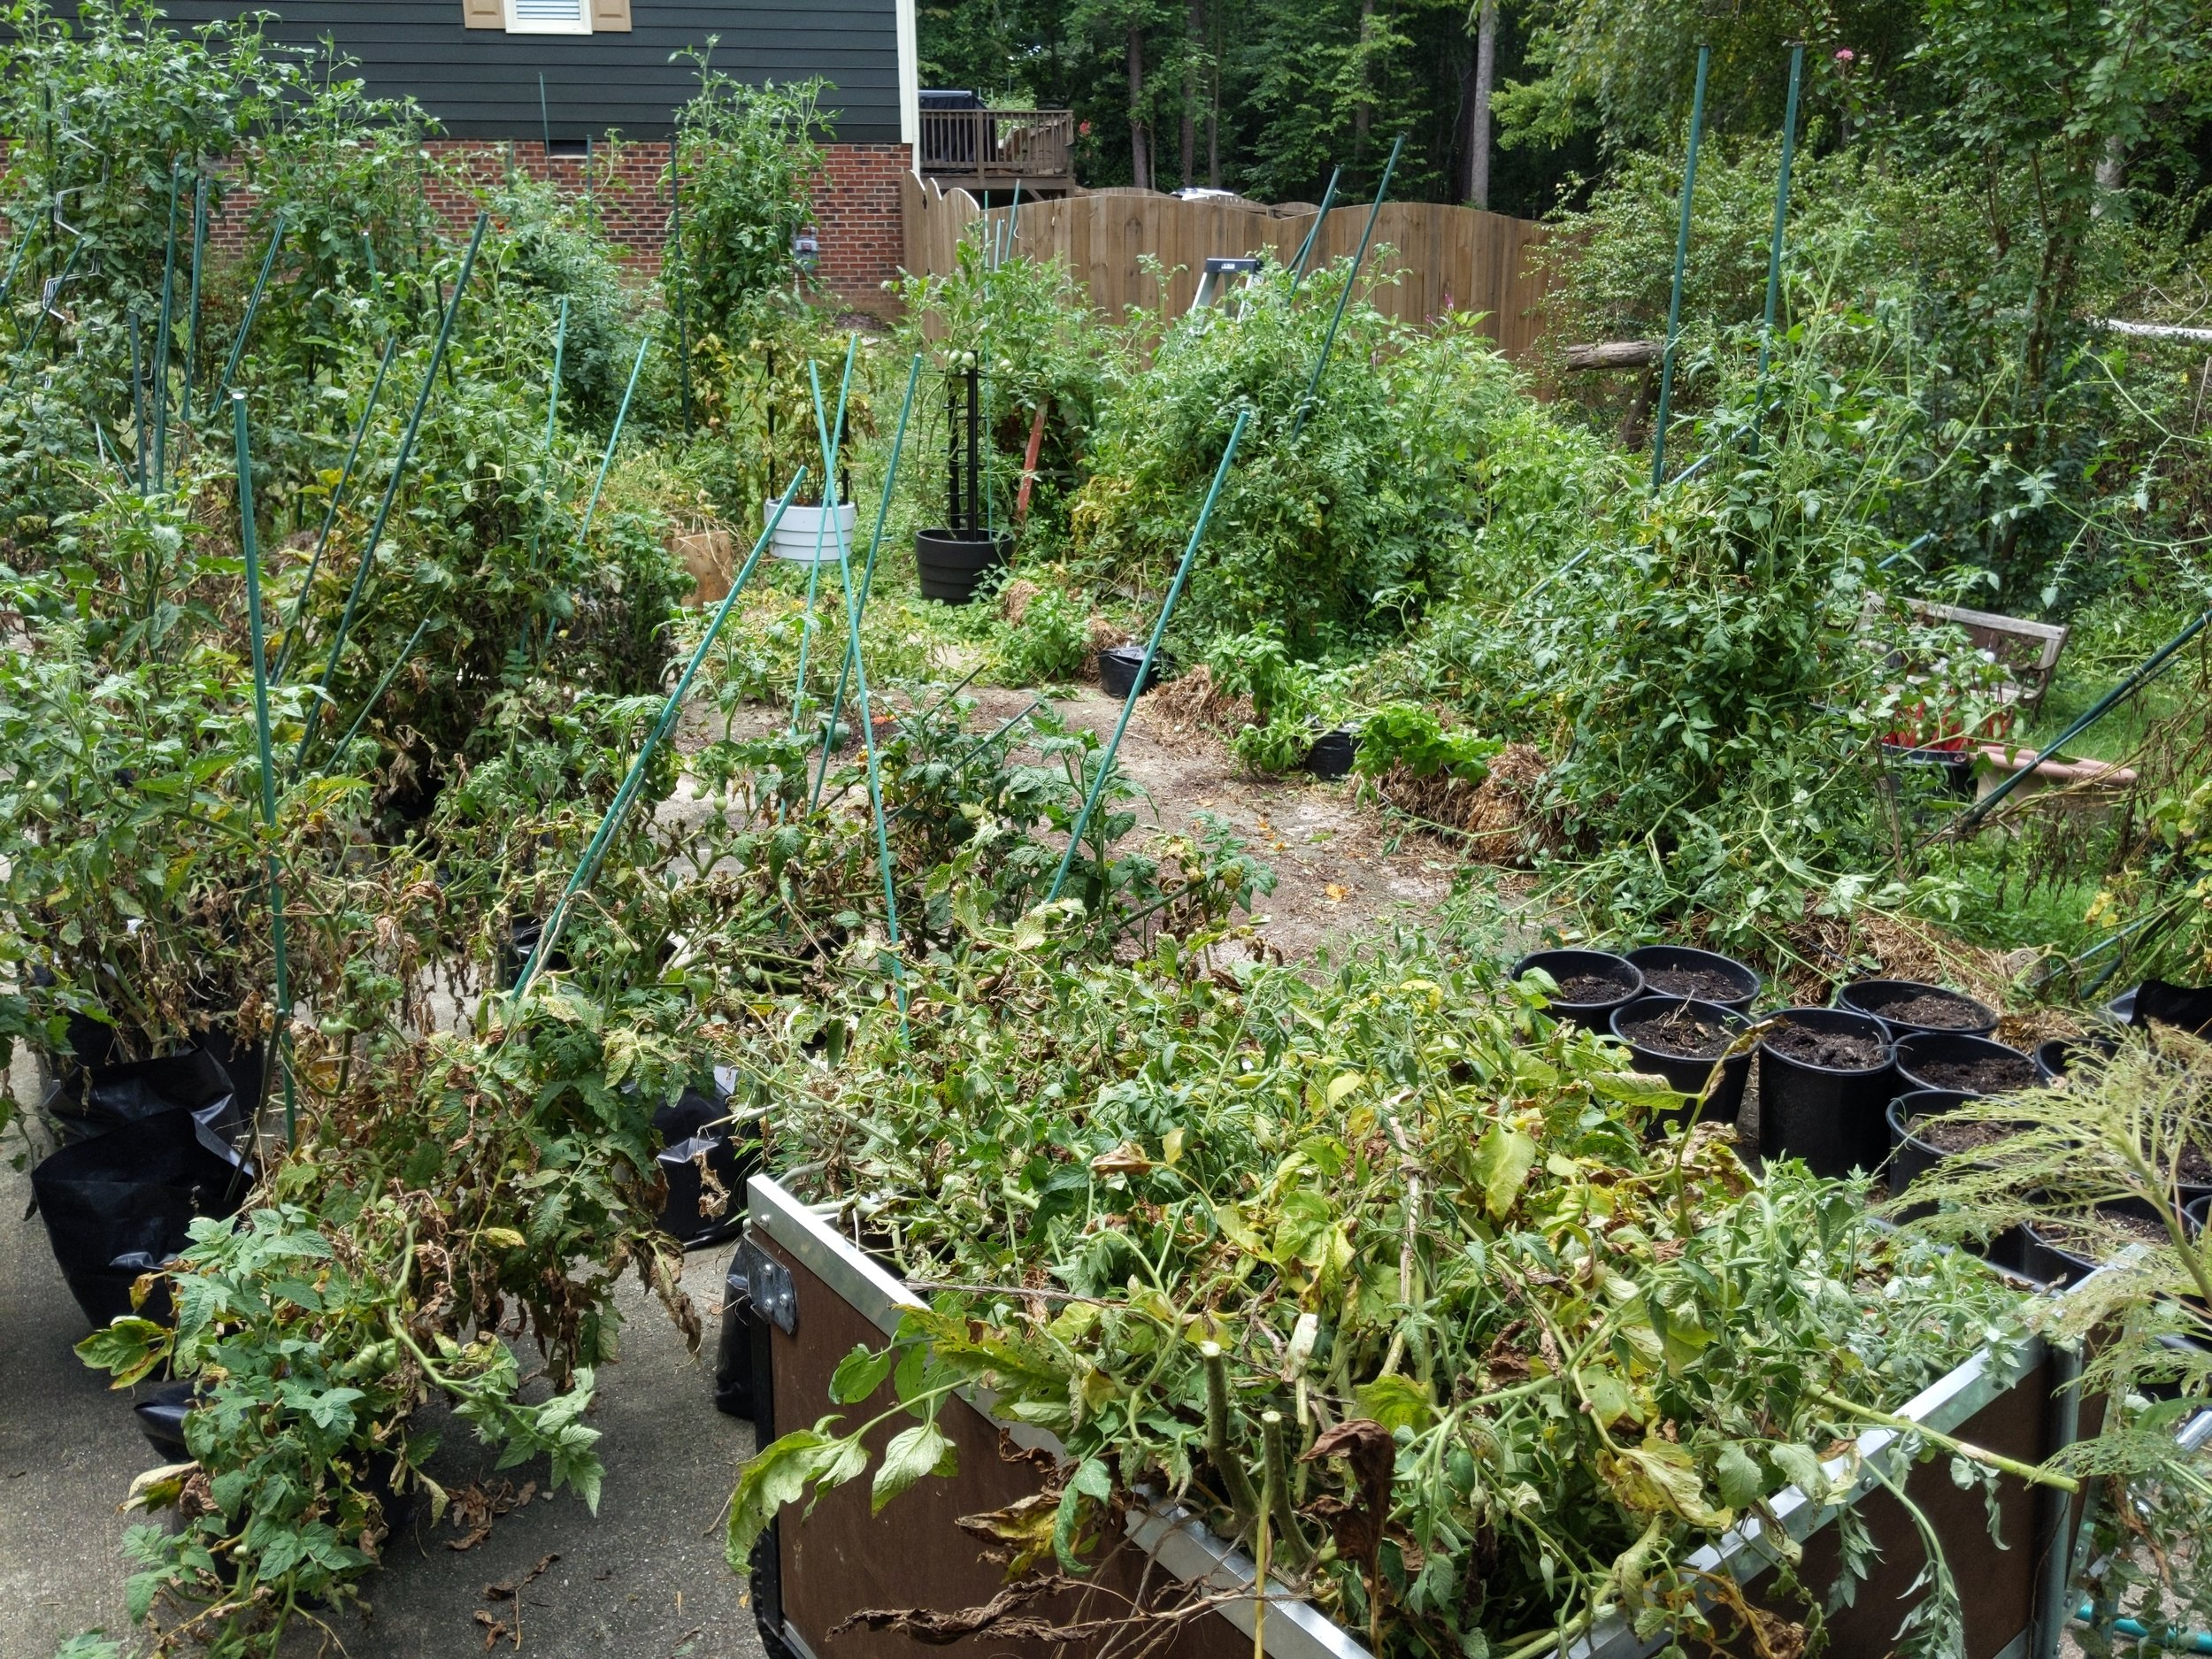 Major garden reorganization happening in early August - bye to the small grow bag indeterminates, severe pruning time for the dwarfs. Harvesting and regular watering and feeding continue.